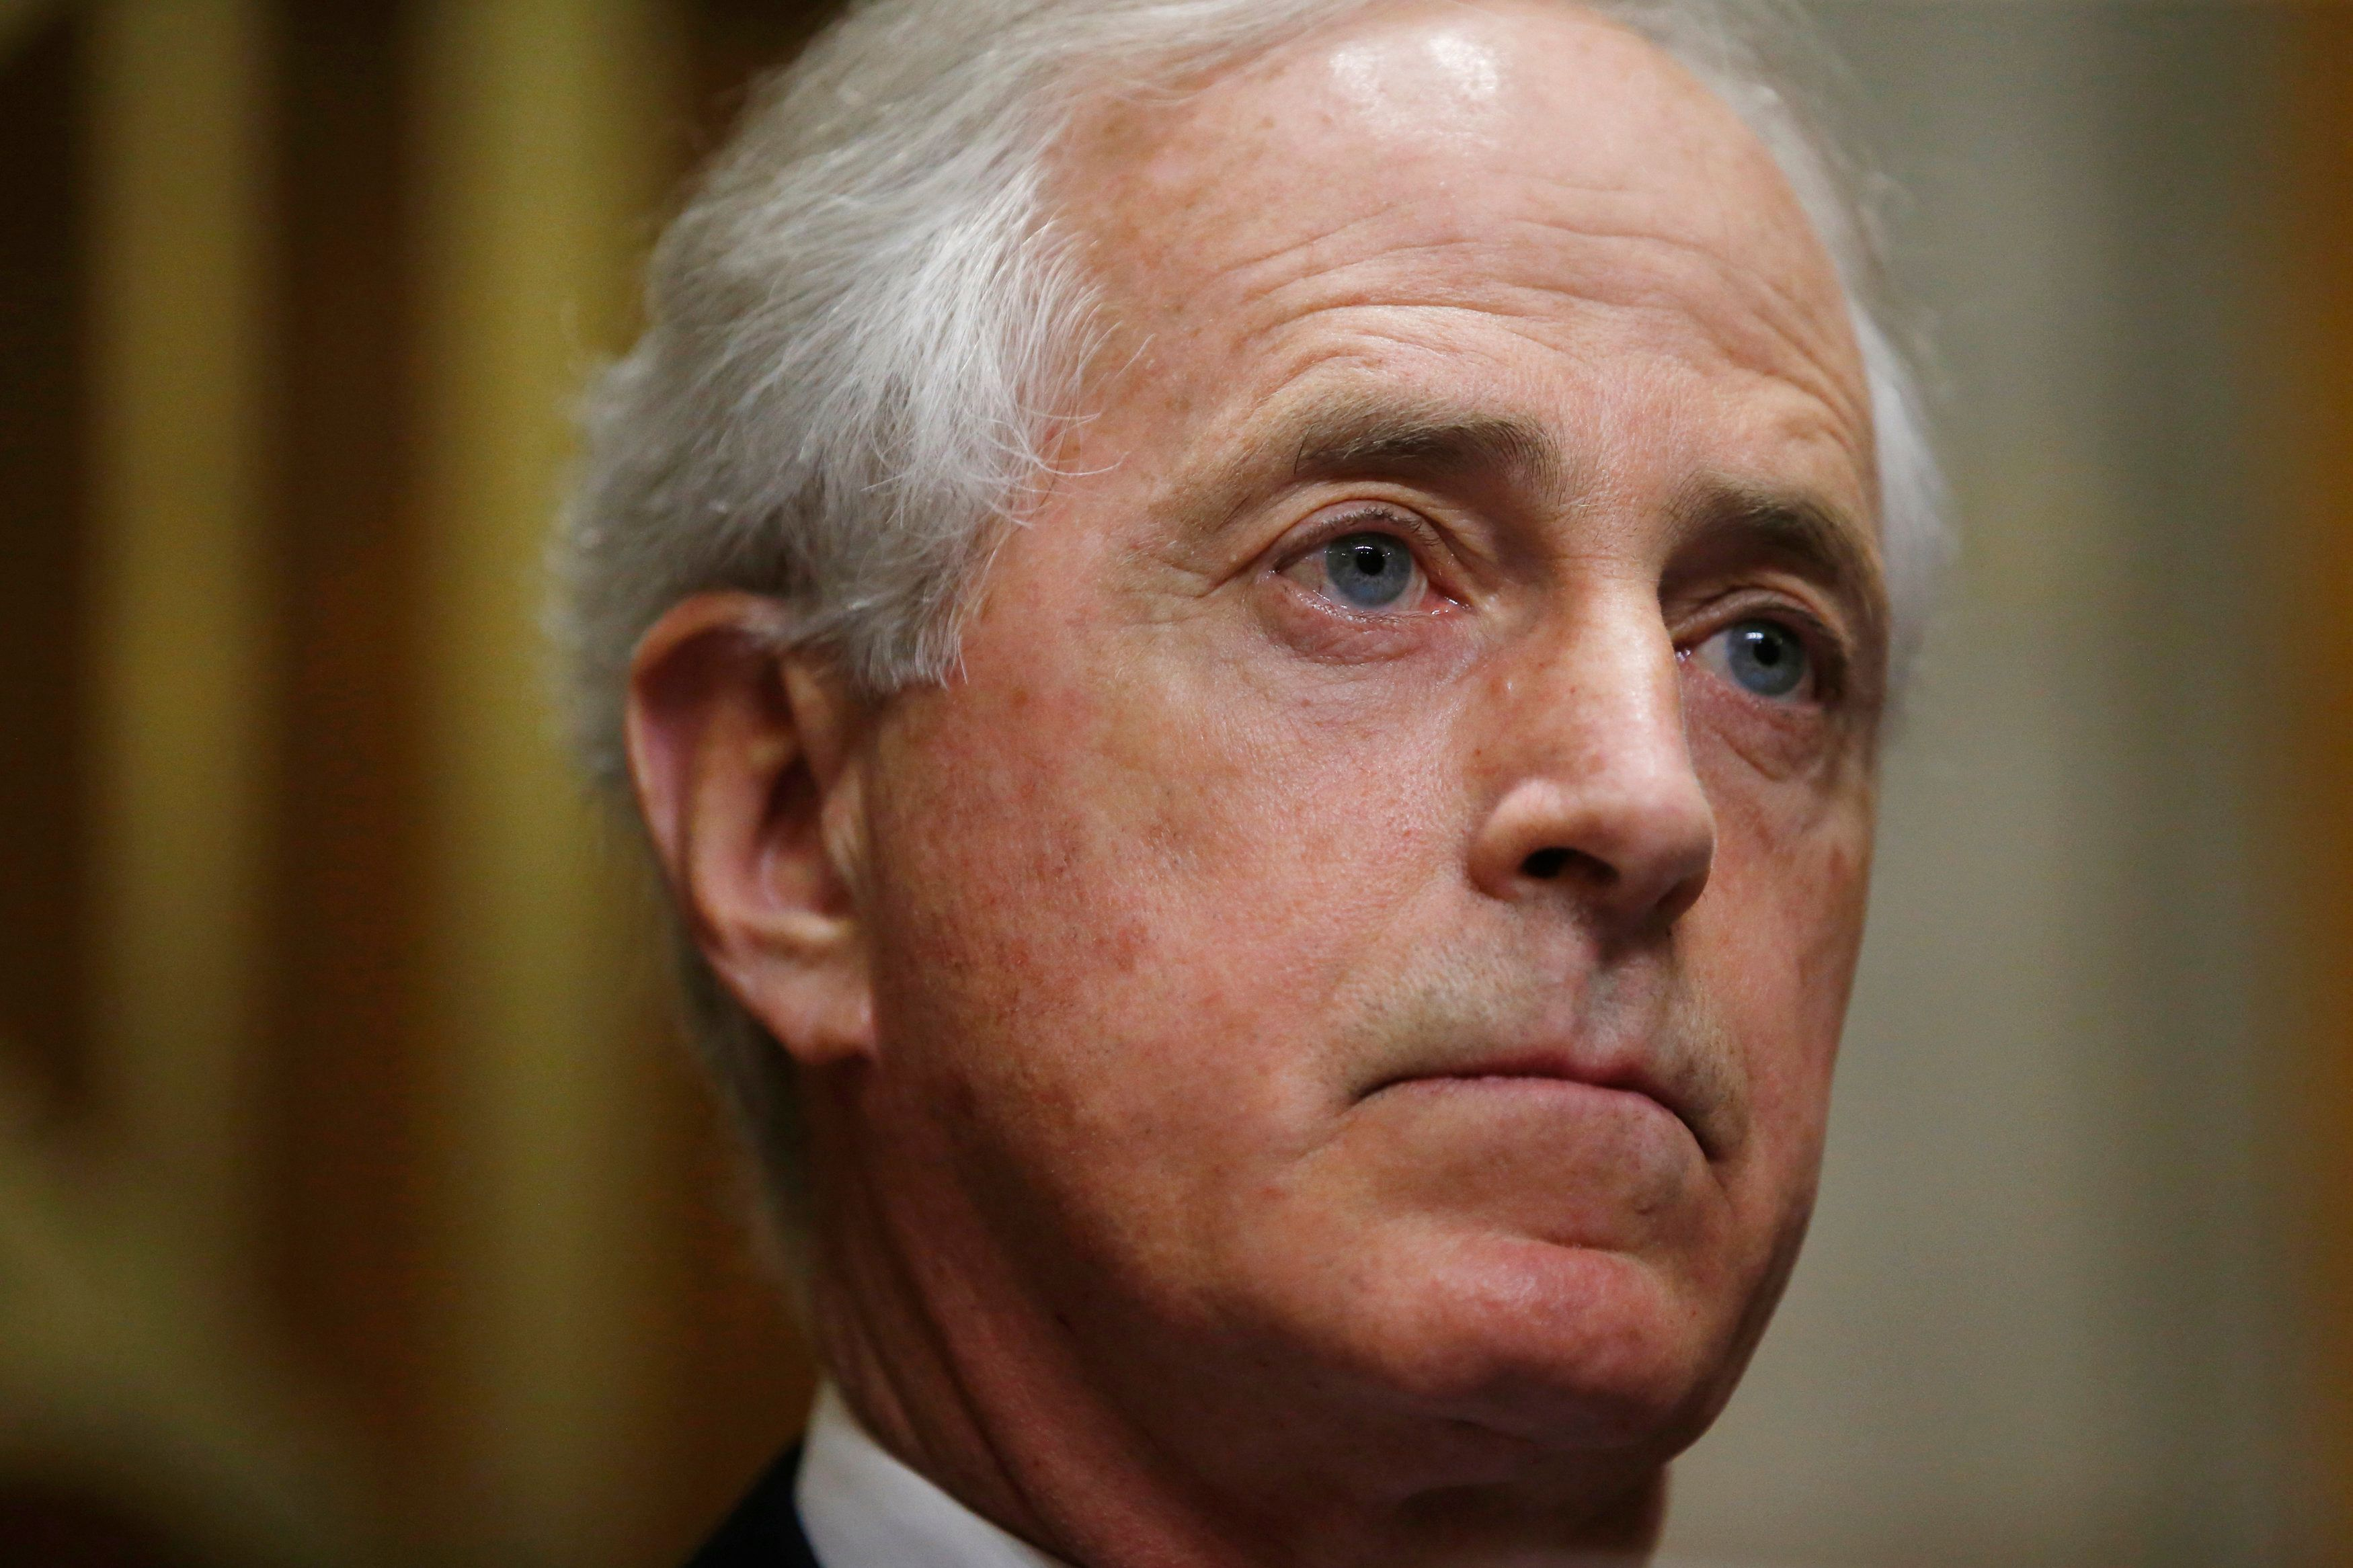 WASHINGTON | Corker says he won't oppose Democrat seeking his Senate seat